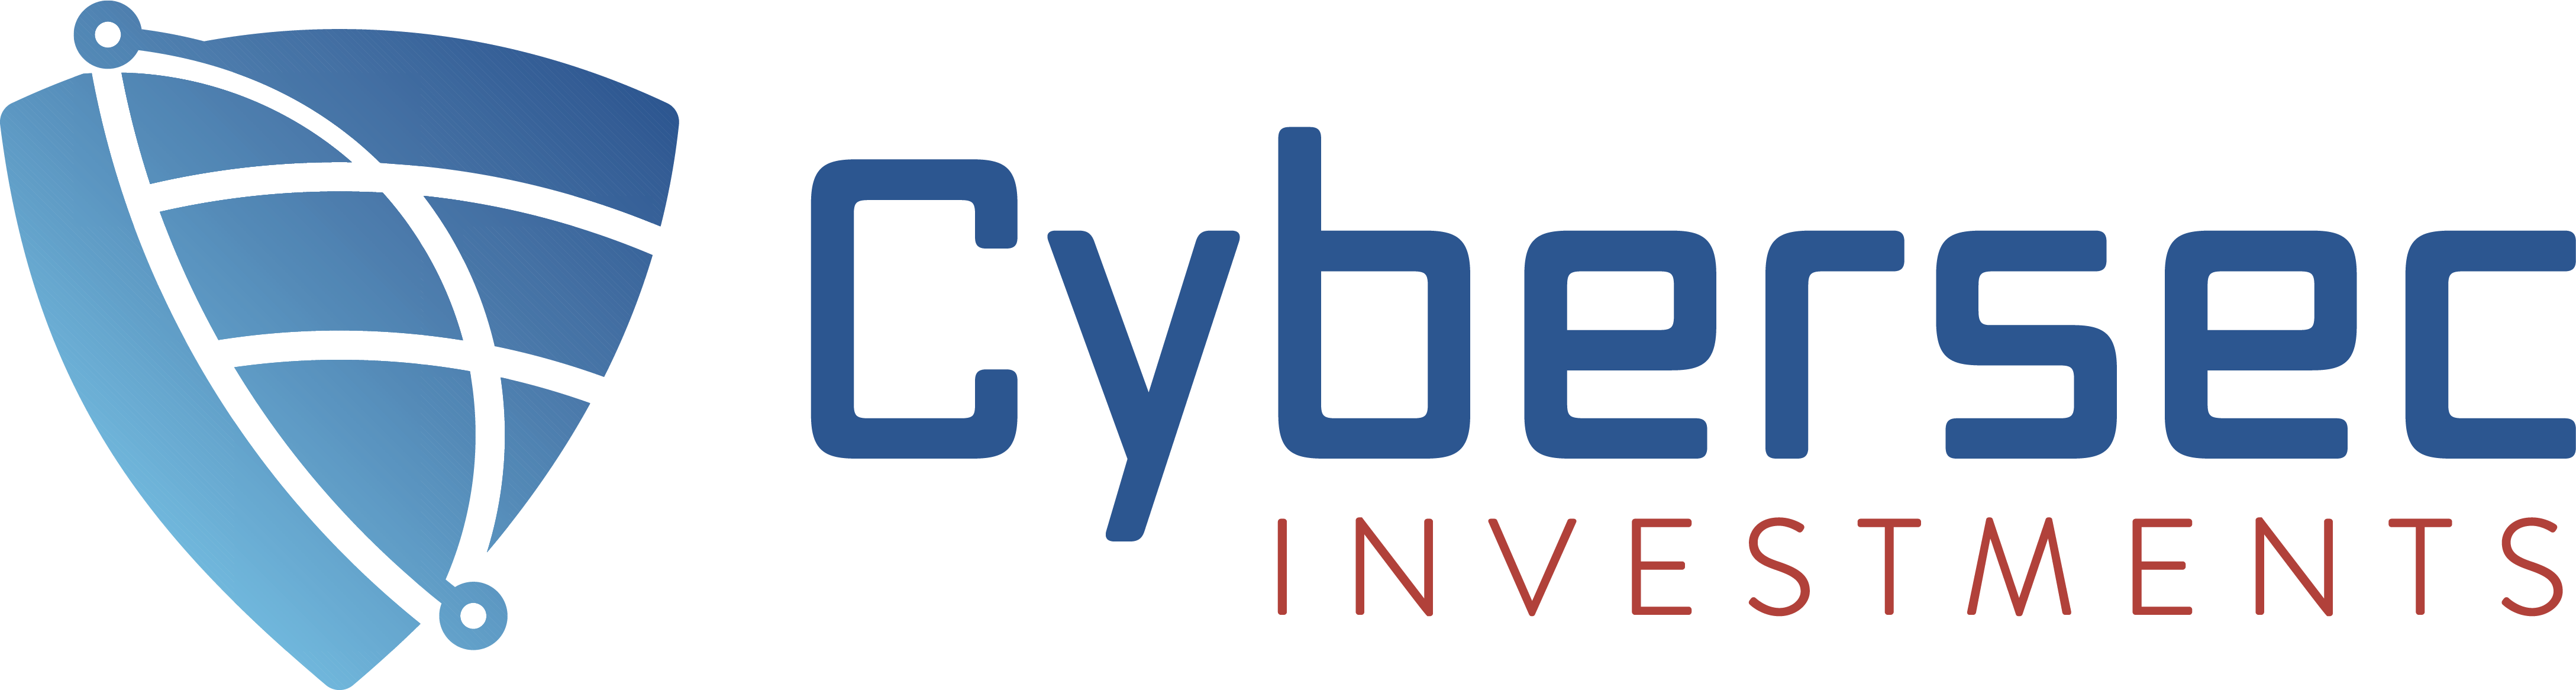 Cybersec Investments